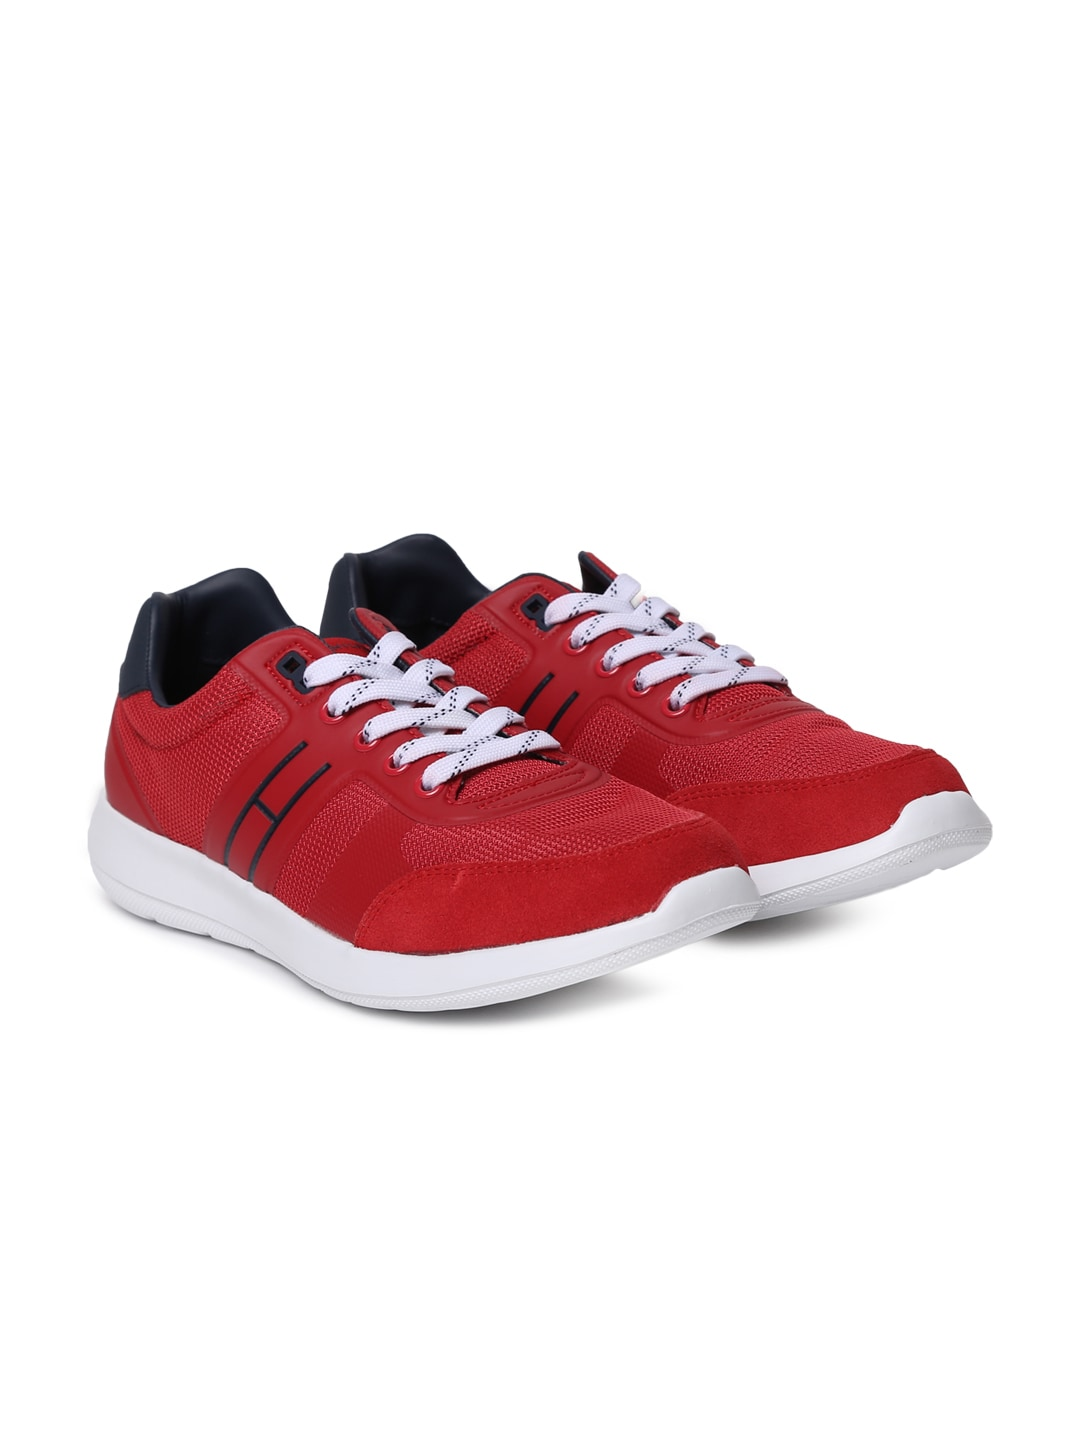 252e8c88d3c933 Tommy Hilfiger Red Casual Shoes - Buy Tommy Hilfiger Red Casual Shoes  online in India